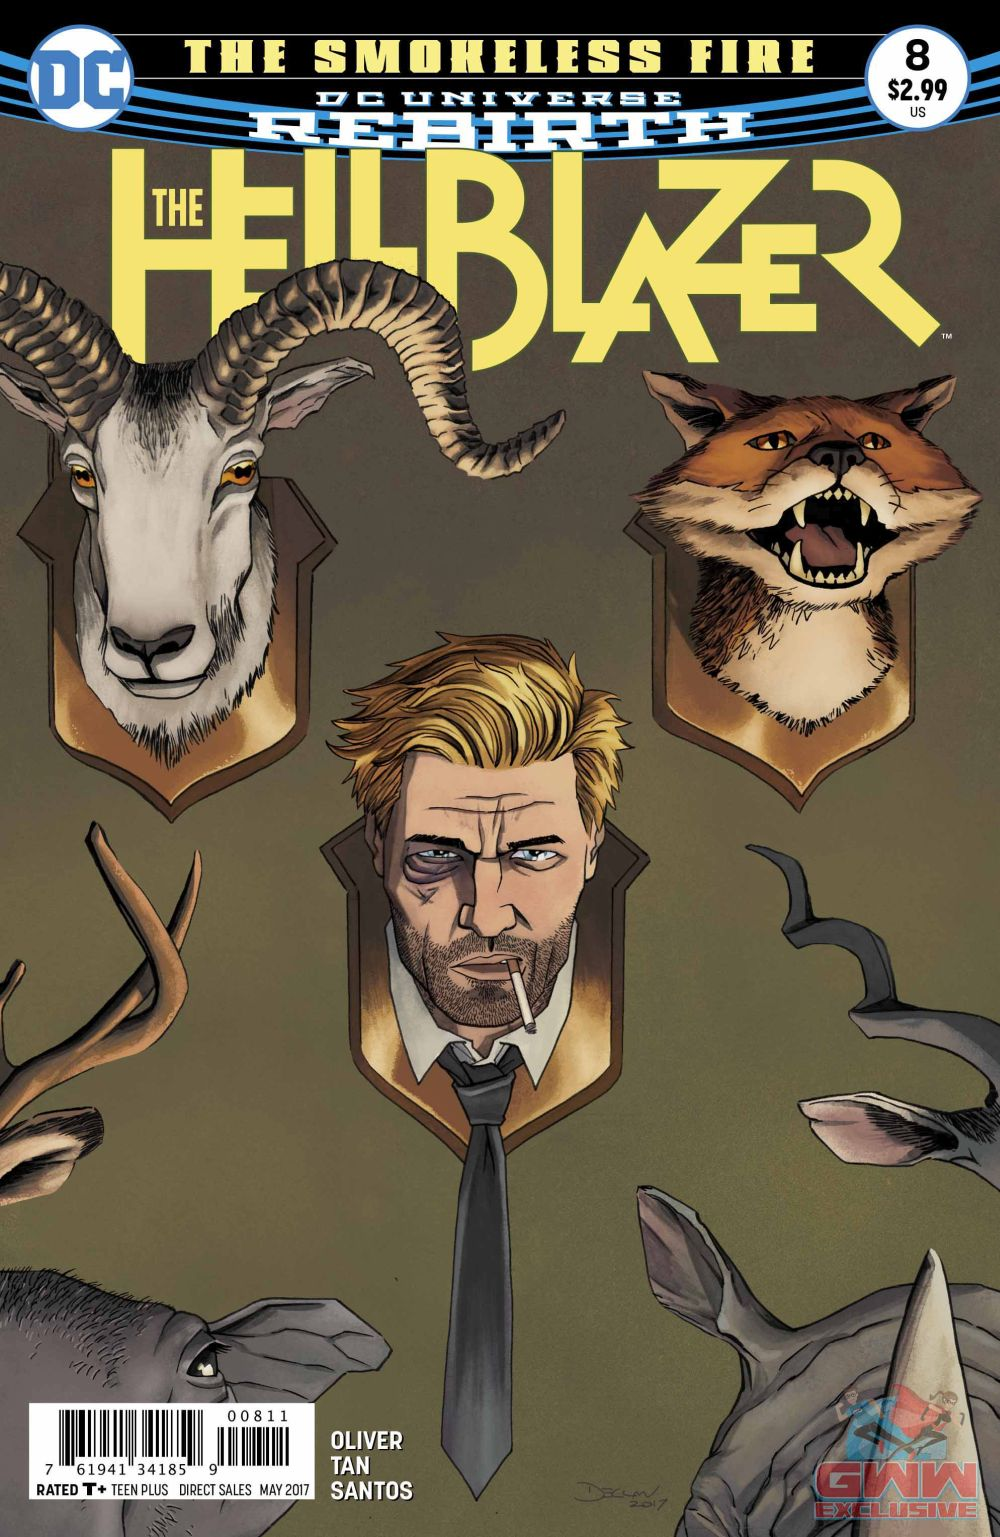 Hellblazer #8 Review